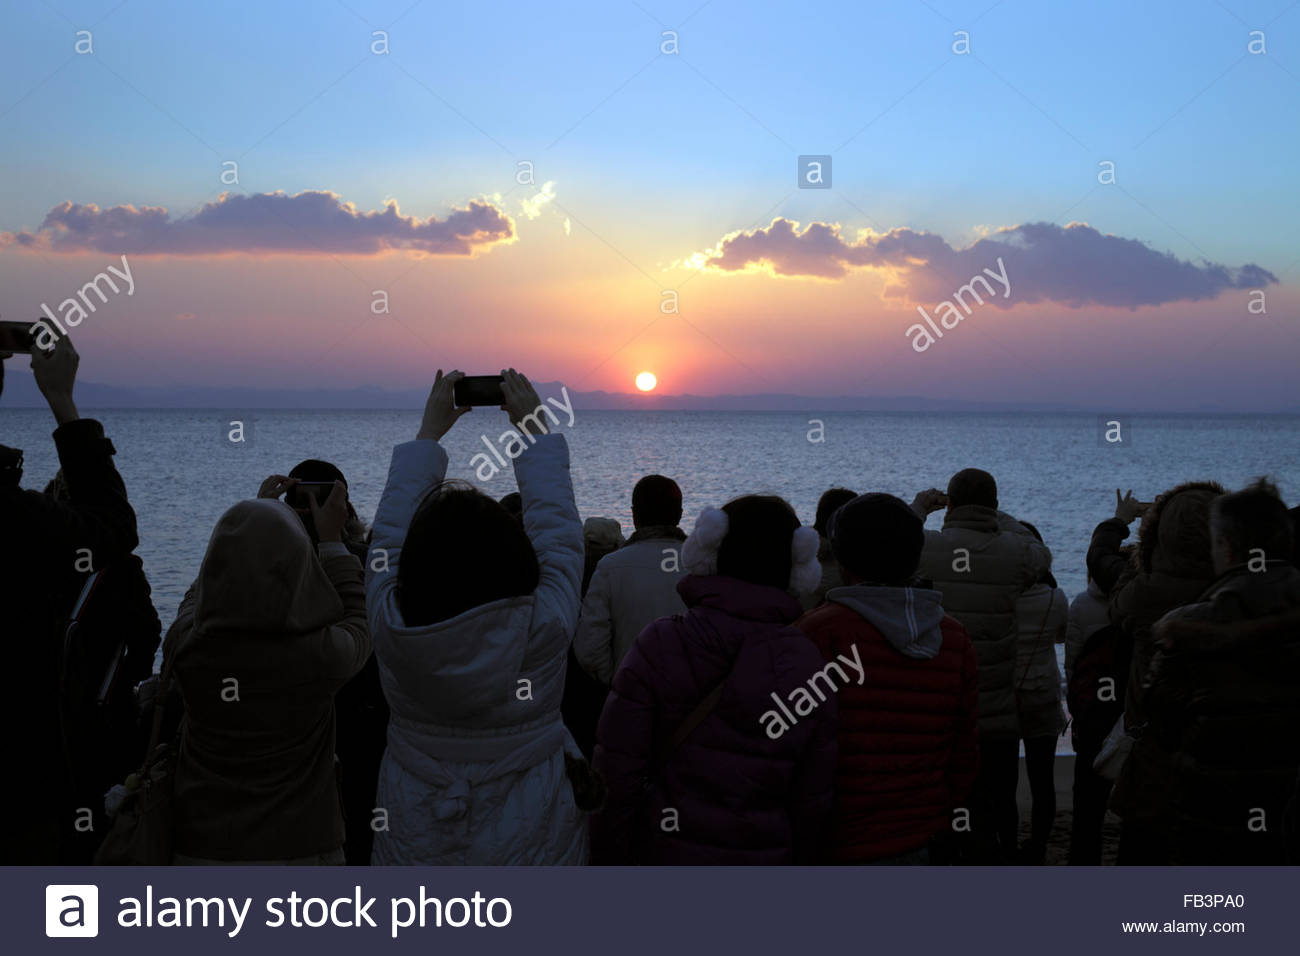 ritual of going to see the first sunrise of the year Japan Miurakaigan - Stock Image